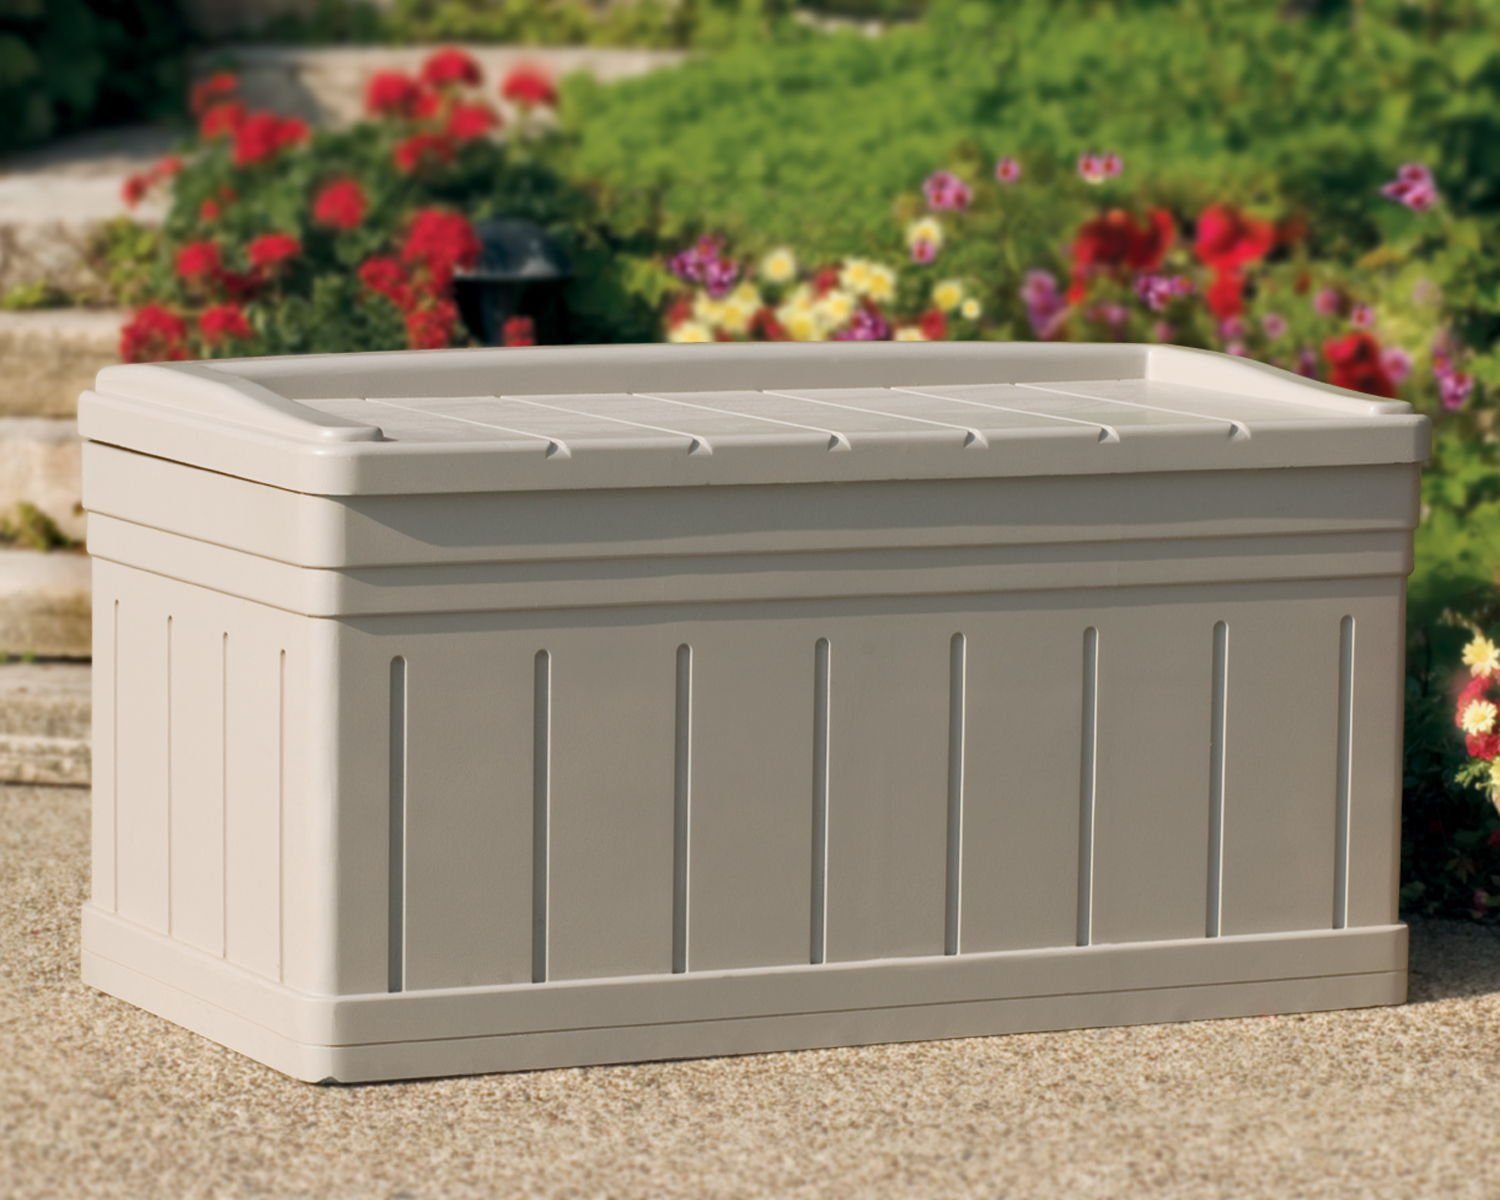 Suncast 488 Litre Plastic Storage Box With Seat